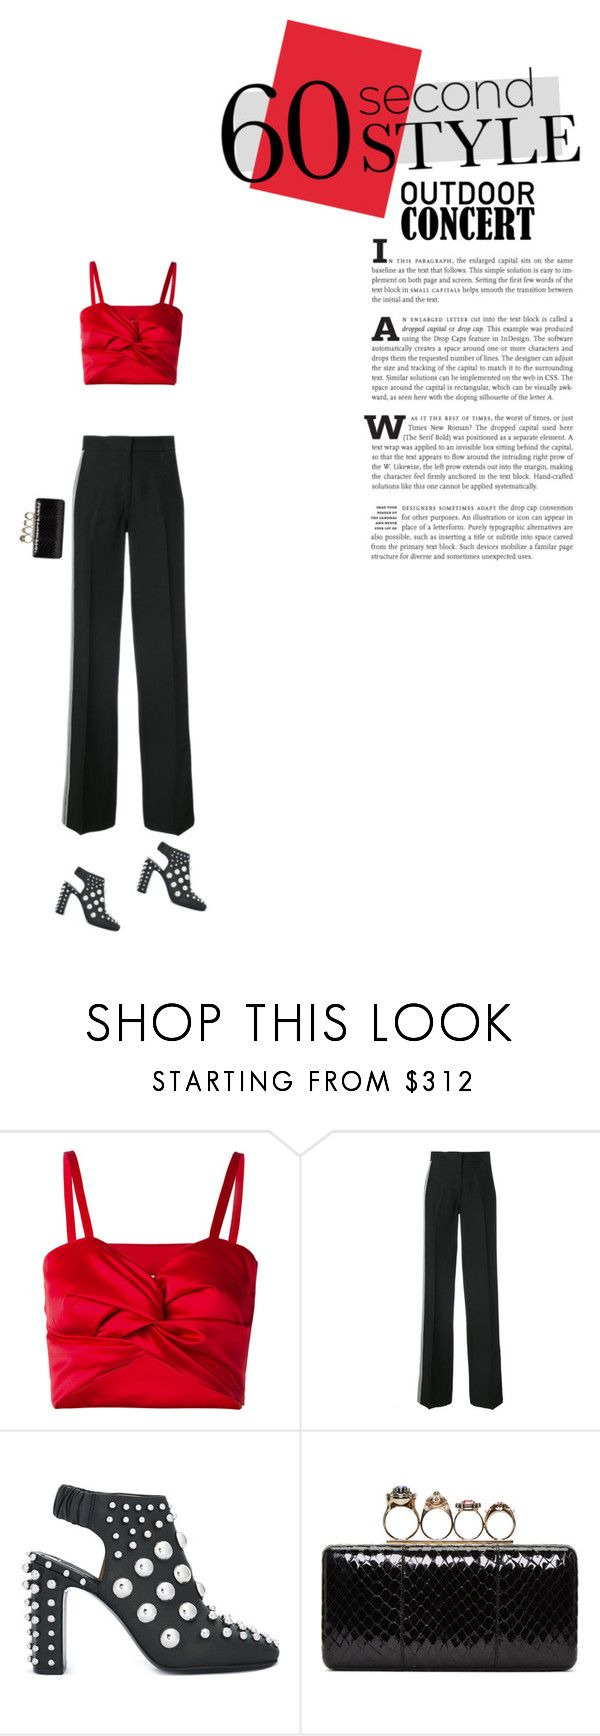 """""""Won't listen   Red And Black"""" by pannise ❤ liked on Polyvore featuring Sadie Williams, Derek Lam, Alexander Wang, Alexander McQueen, 60secondstyle, summerbooties and outdoorconcerts"""